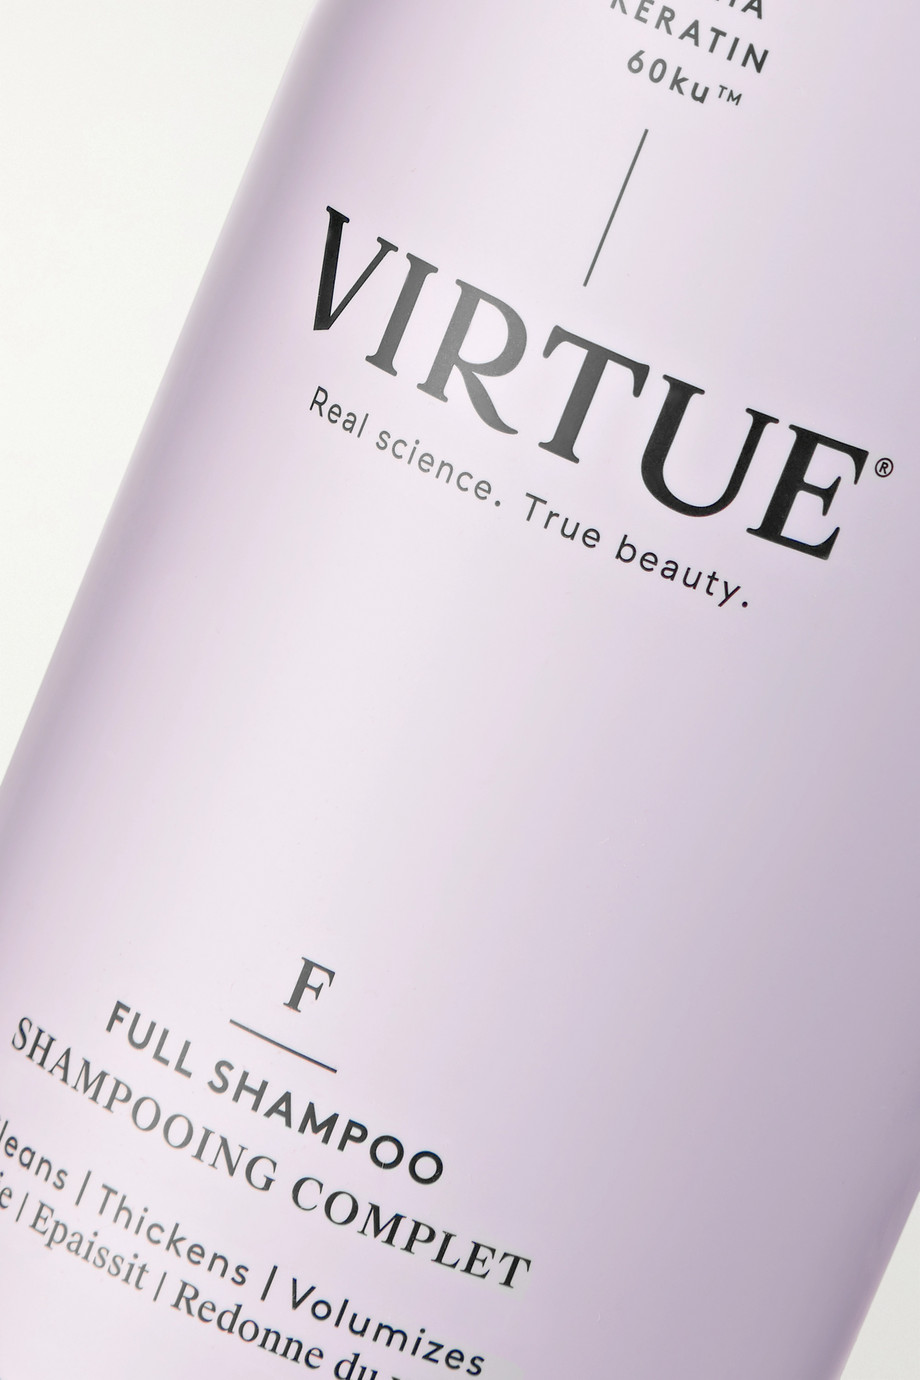 Virtue Full Shampoo, 500ml